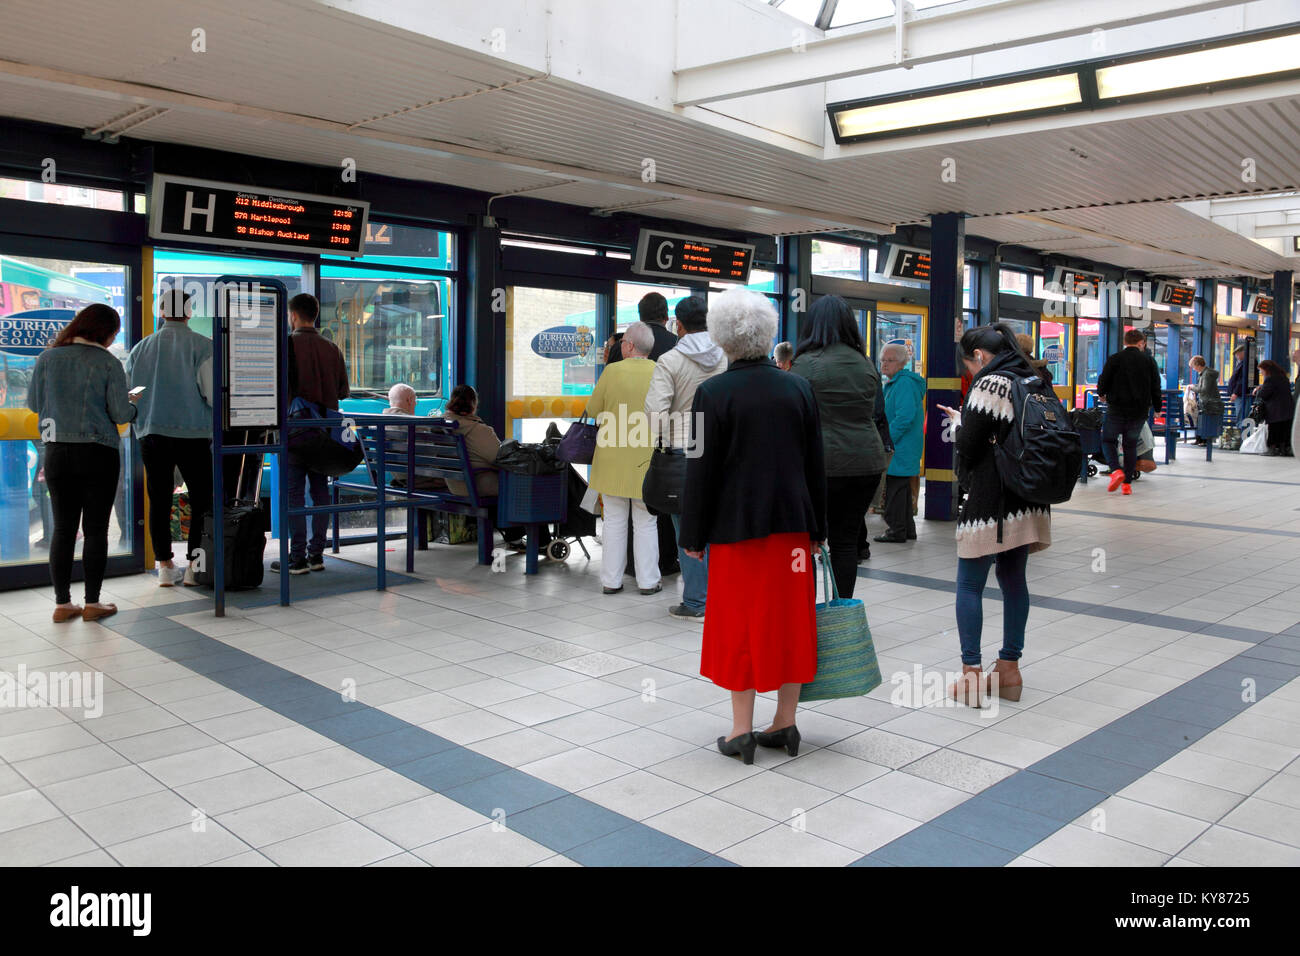 Passengers waiting for buses in North Road bus station, Durham, England - Stock Image